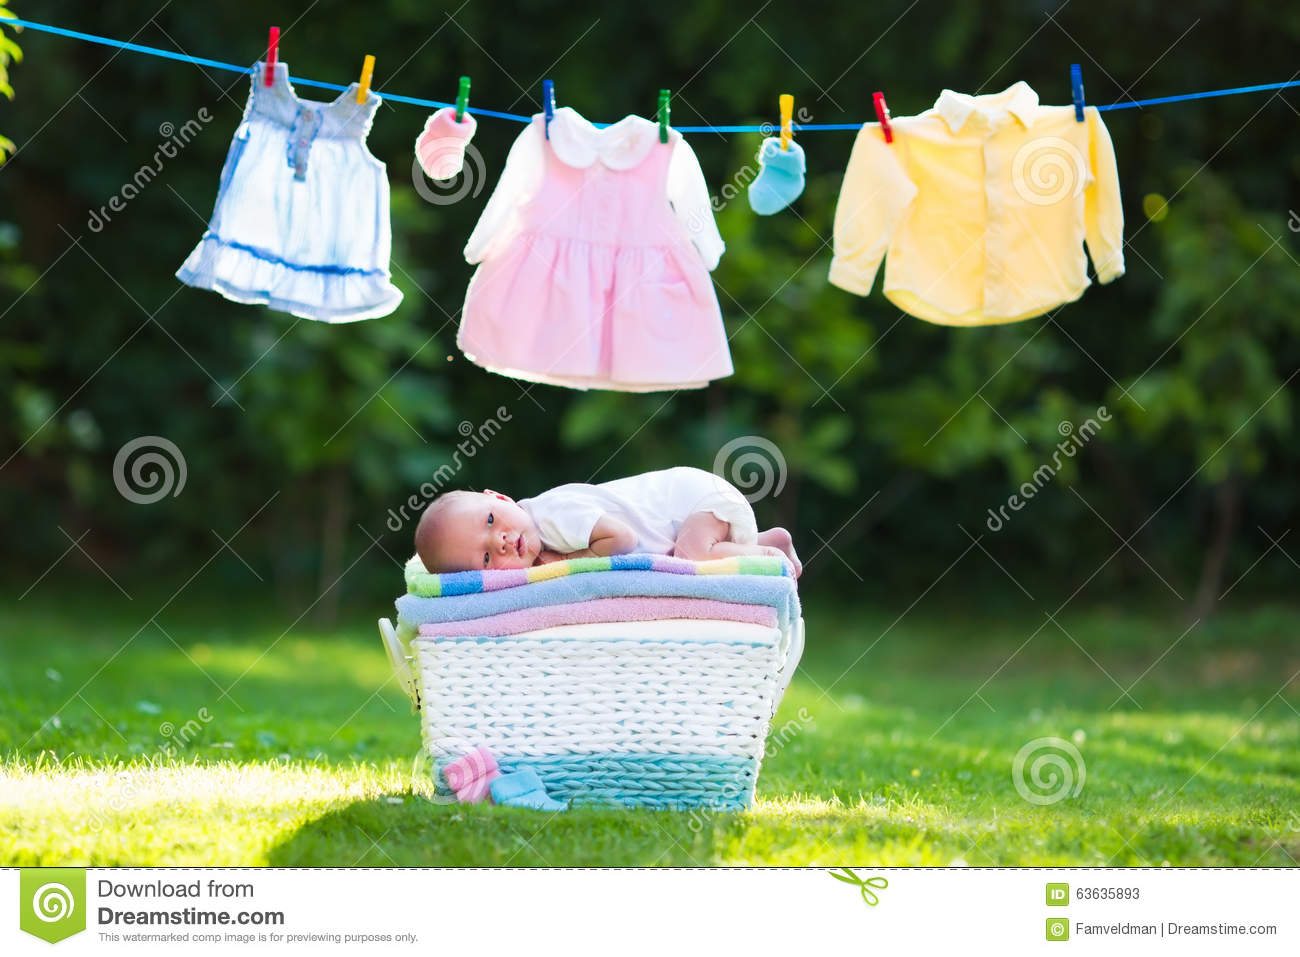 c2744d49c251 Baby Boy On A Pile Of Towels Outdoors Stock Image - Image of little ...